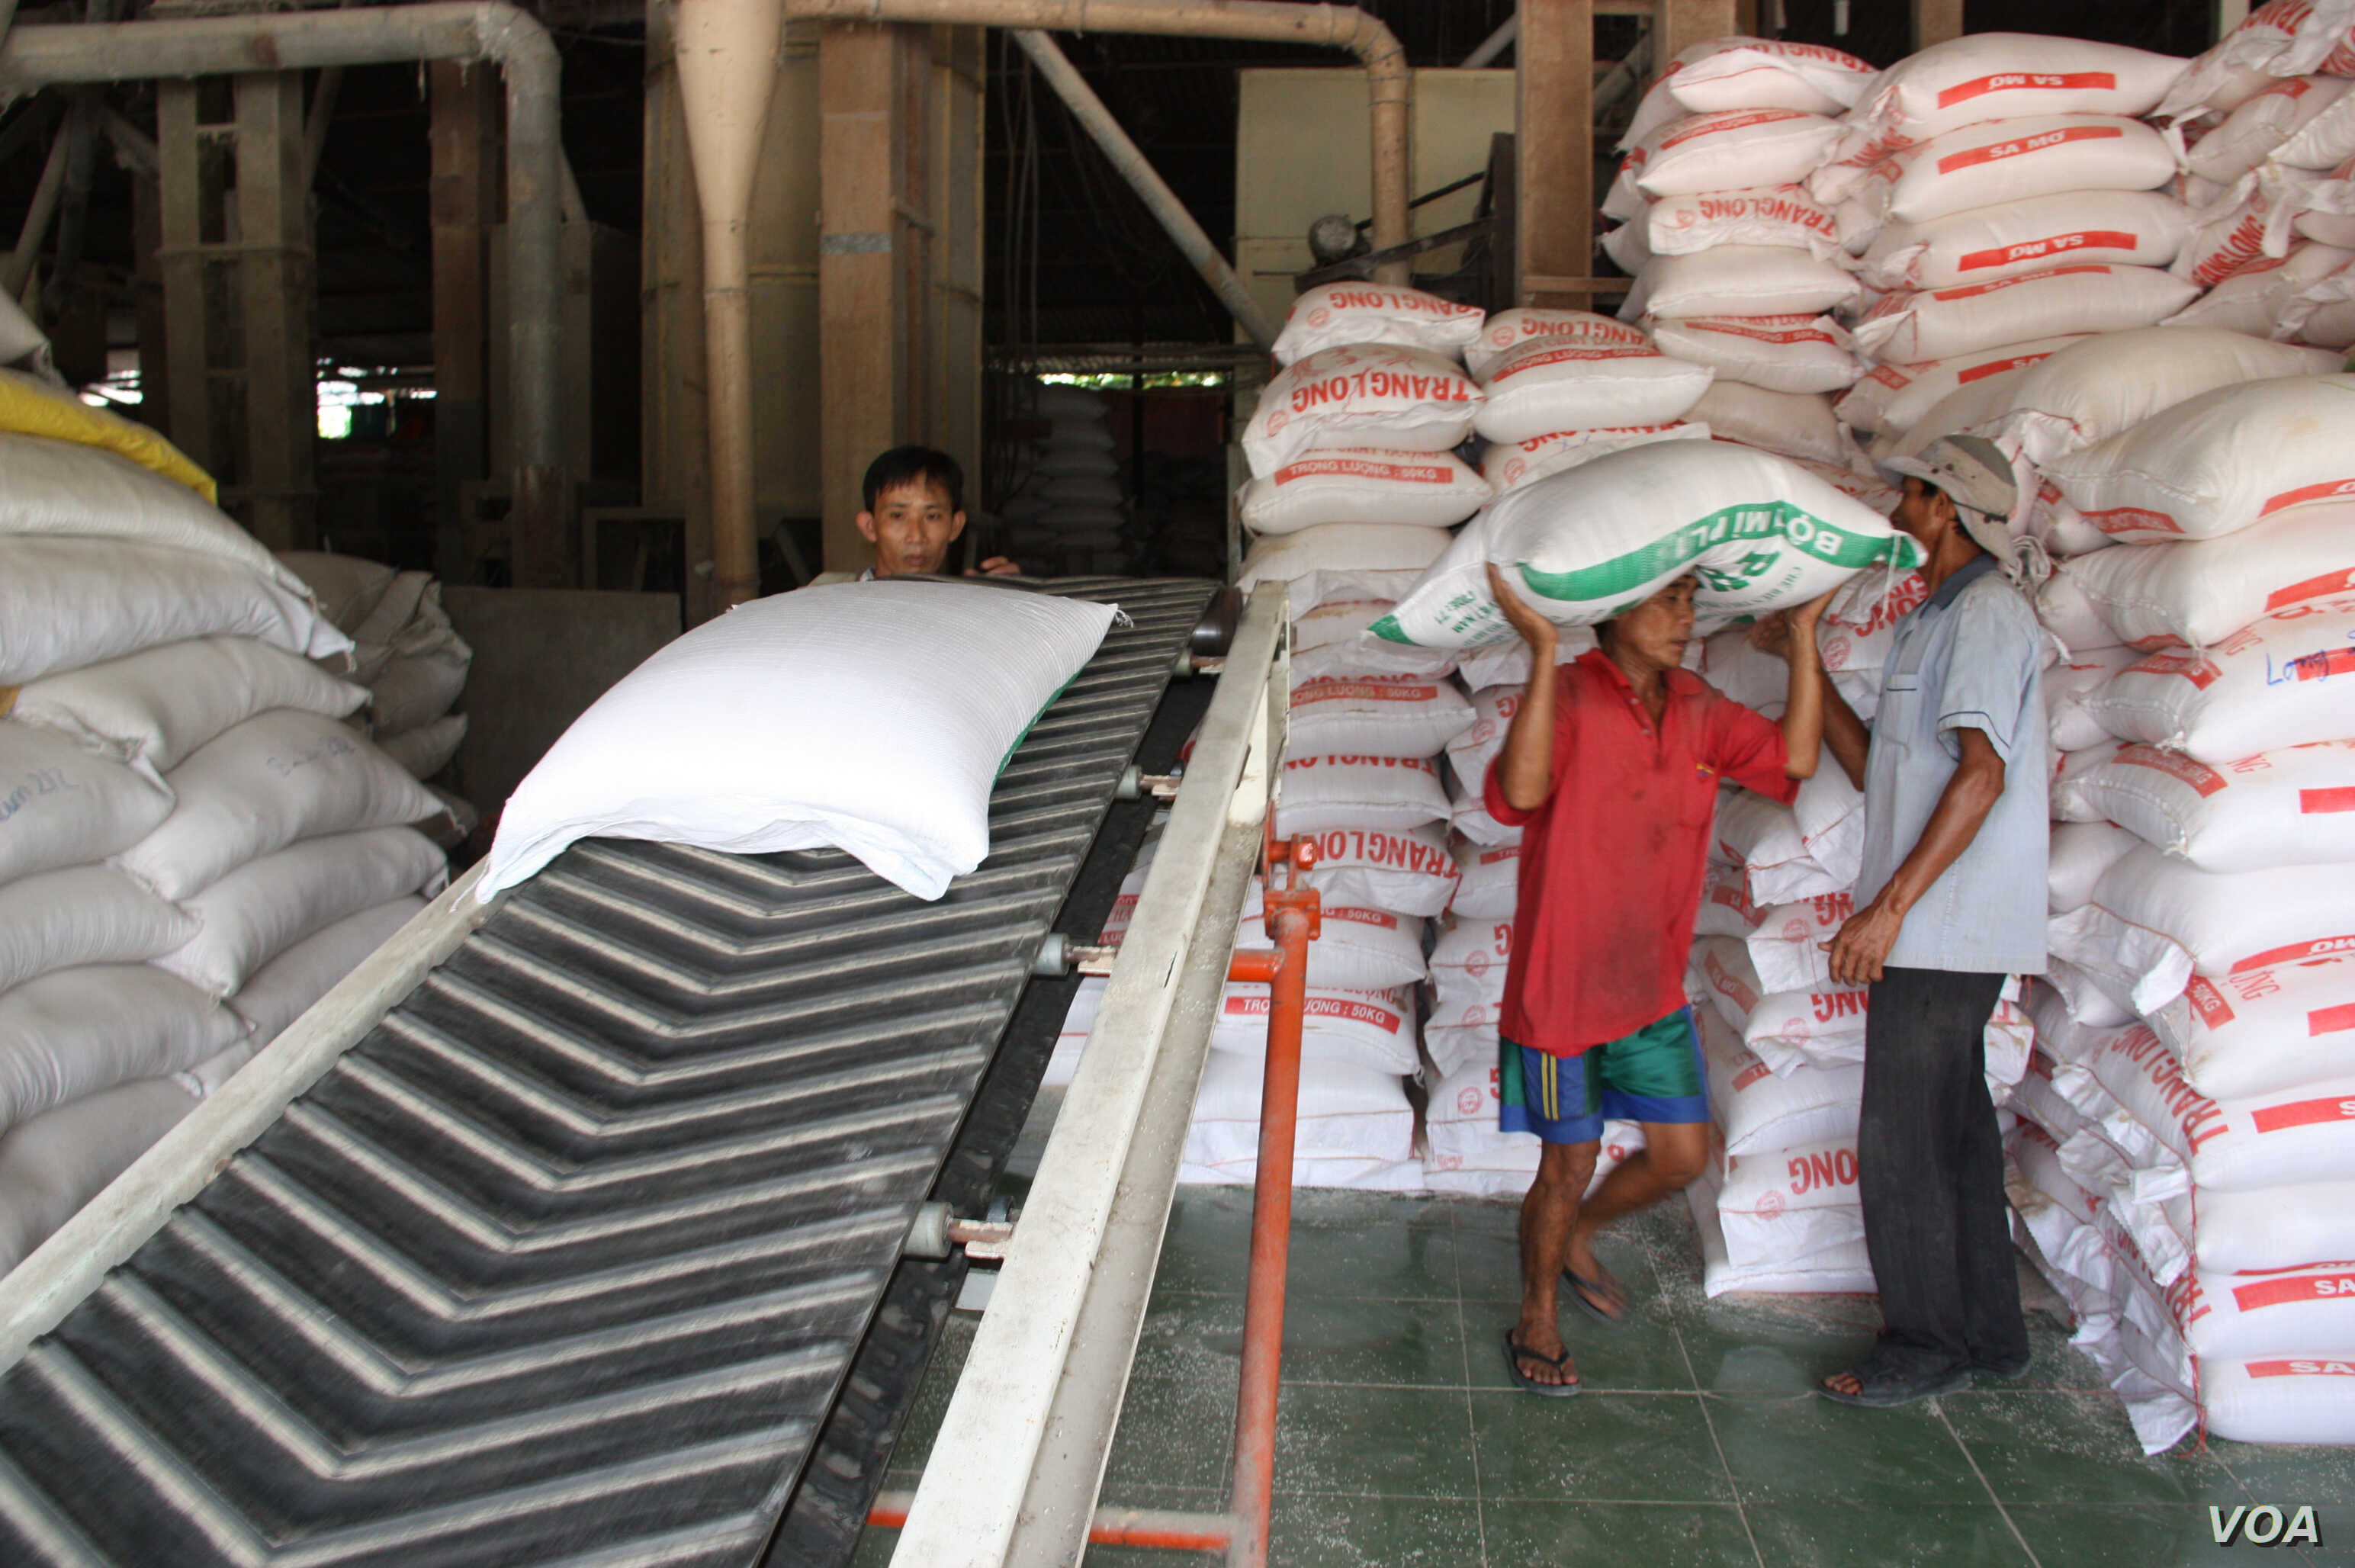 Workers carry bags of rice off a conveyor belt to stak in trucks, Tien Giang, Vietnam, September 14, 2012. (D. Schearf/VOA)